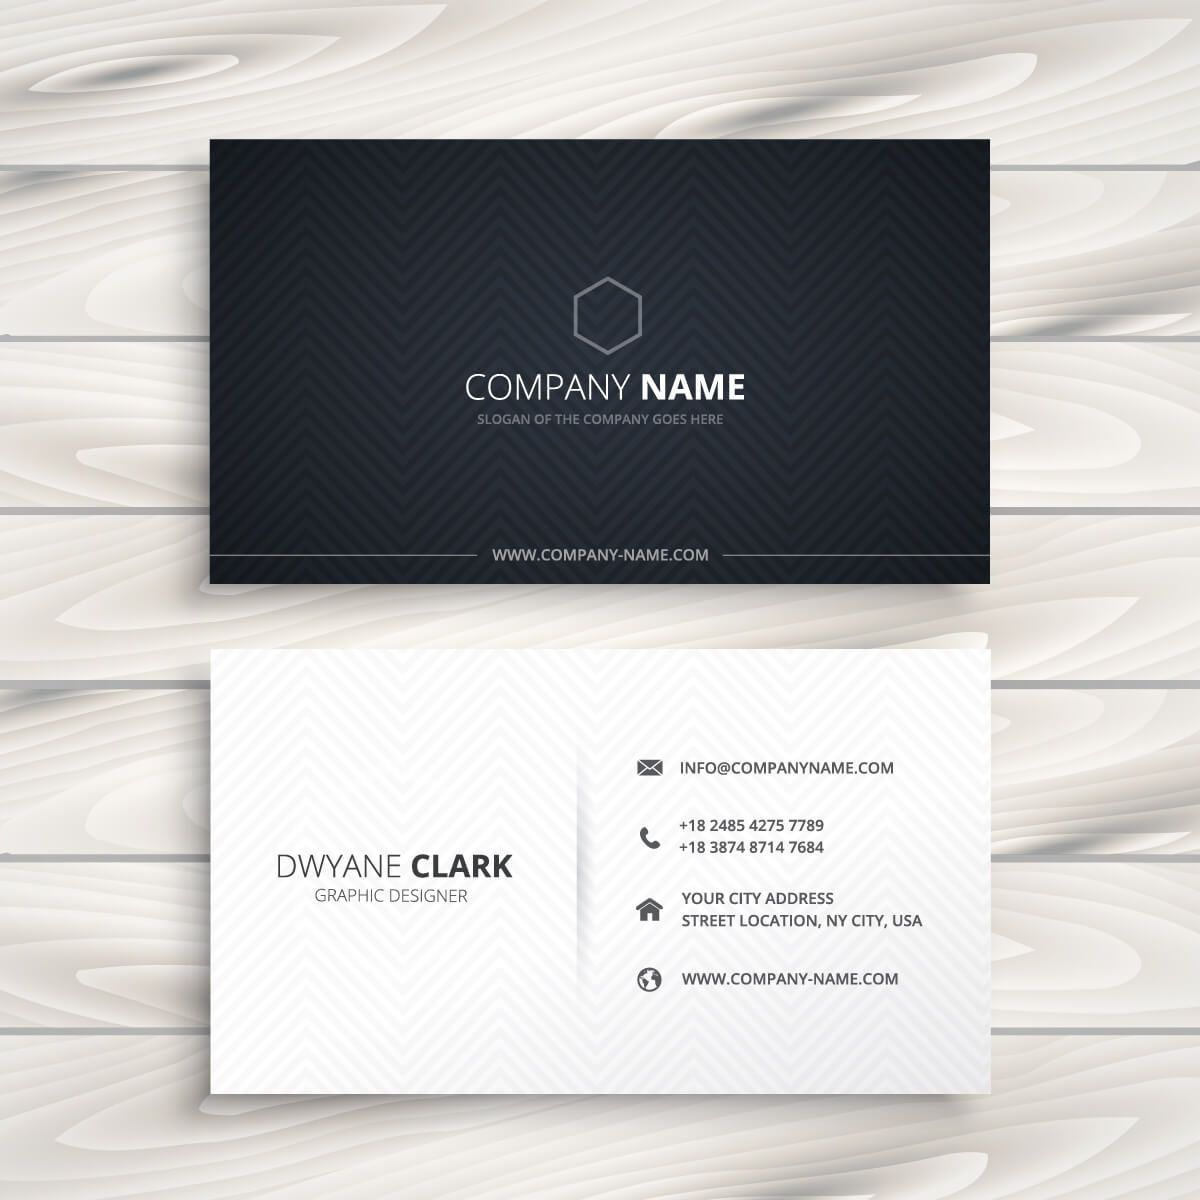 Business card sample design http49designersportfolio21 business card sample design http49designersportfolio2 magicingreecefo Image collections